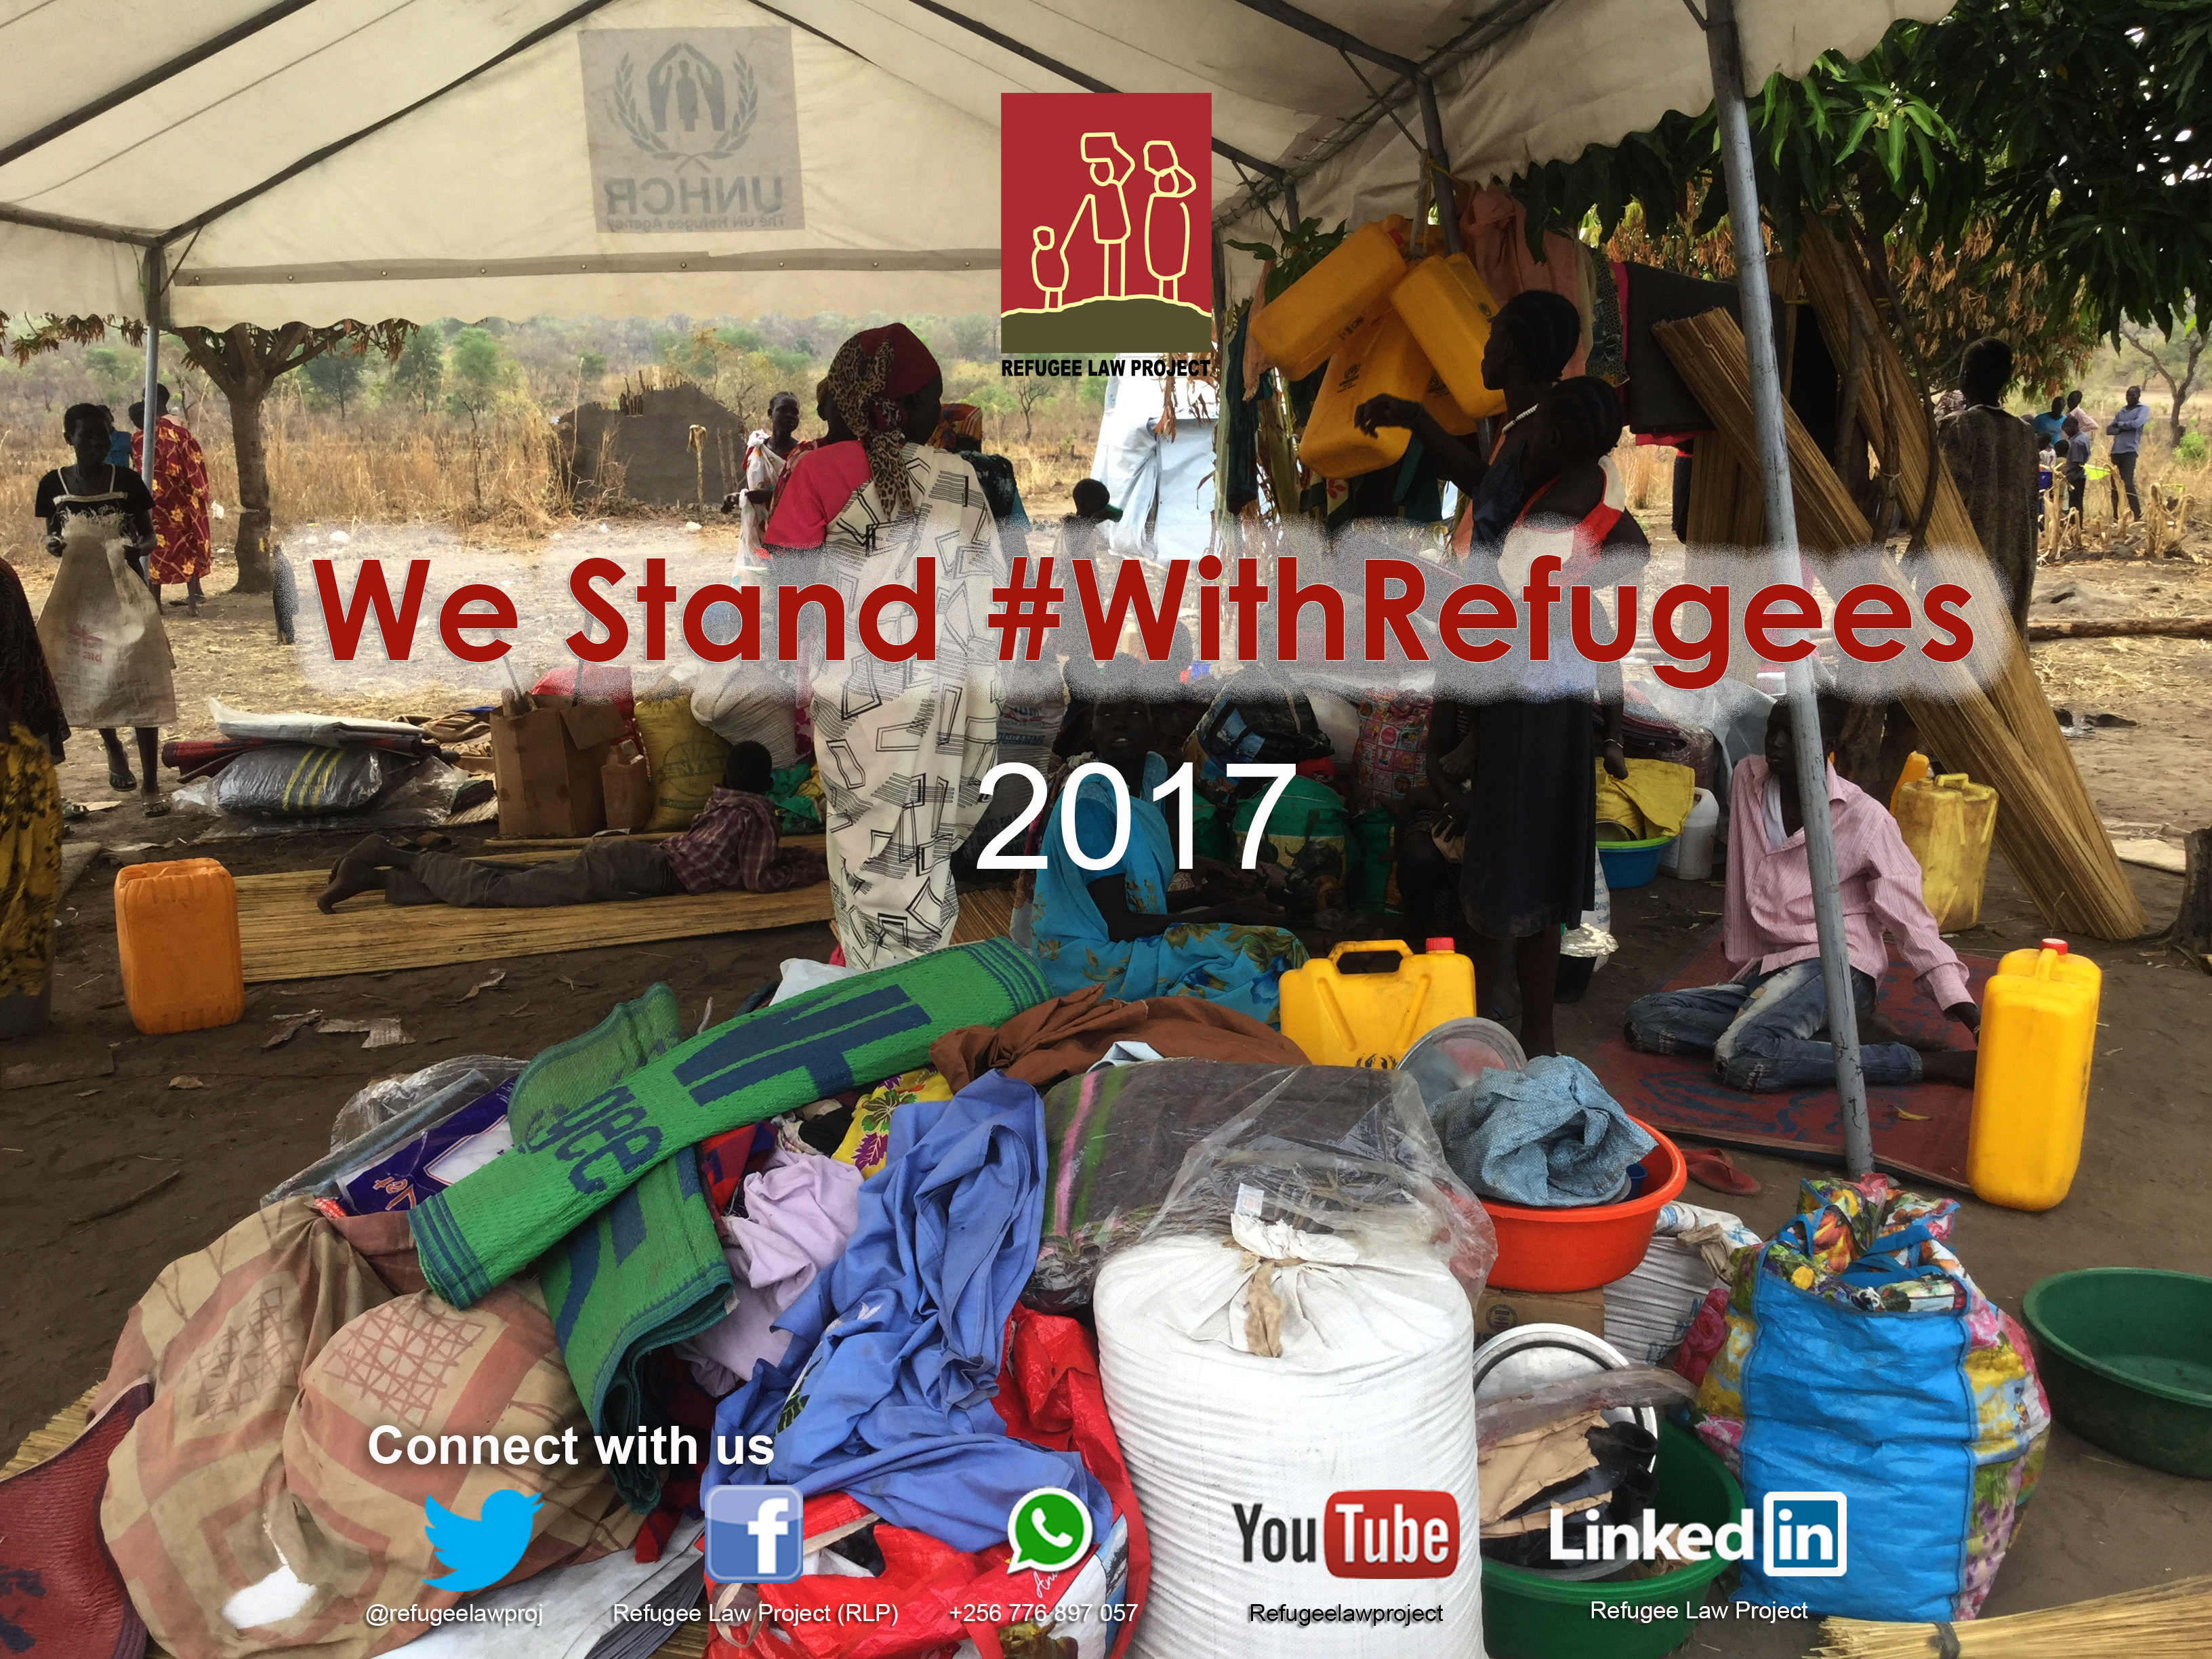 refugee law project The refugee law project (rlp) was established in 1999 to provide legal aid to asylum seekers and refugees in uganda.